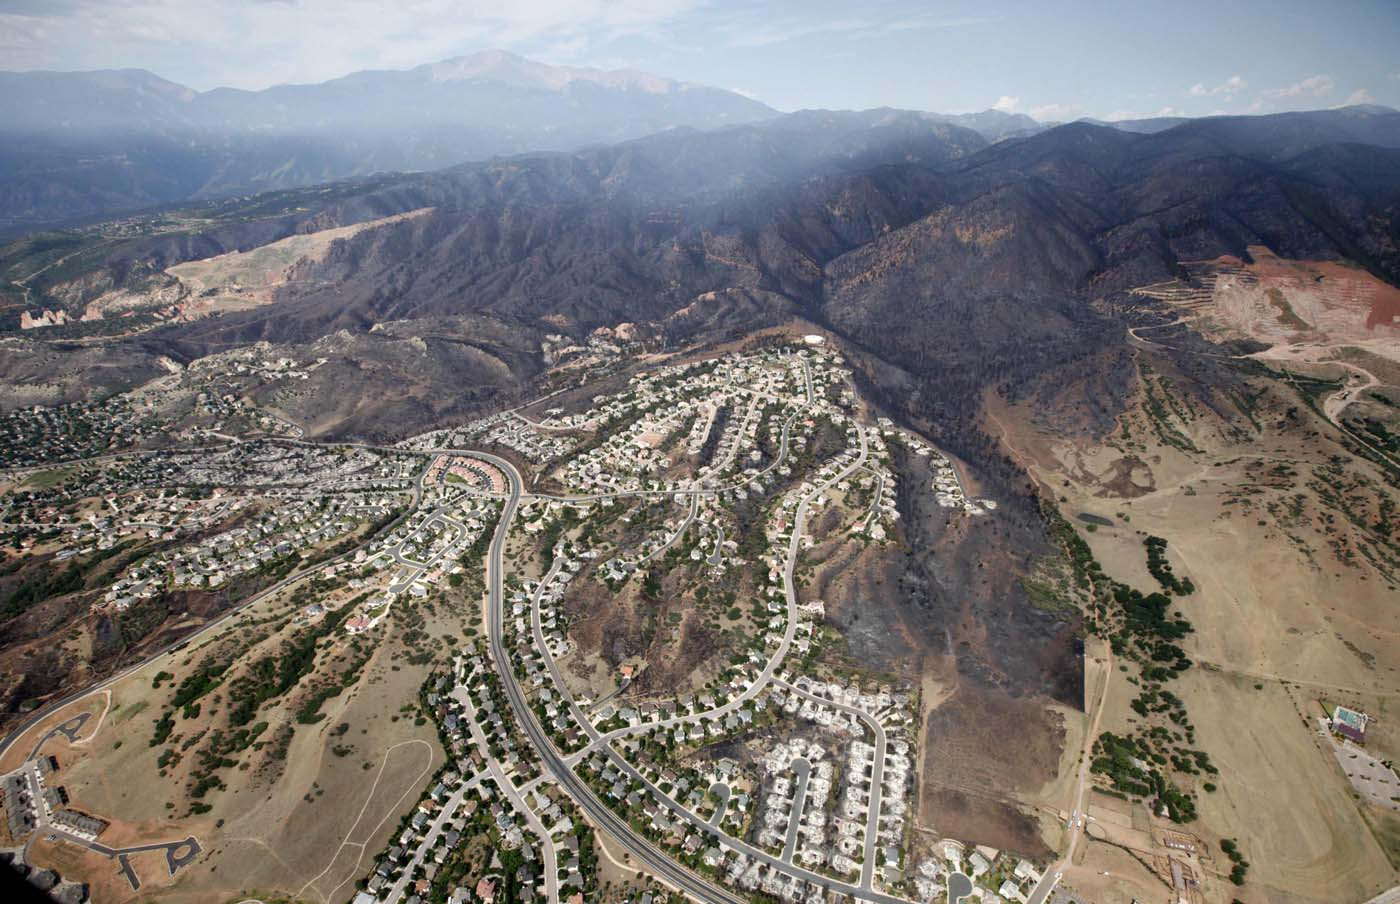 JUNE 28: The burned area of hundreds of totally destroyed homes in the Waldo Canyon fire is seen from the air with Pikes Peak in the background in Colorado Springs, Colorado June 28, 2012. (Rick Wilking/Reuters)